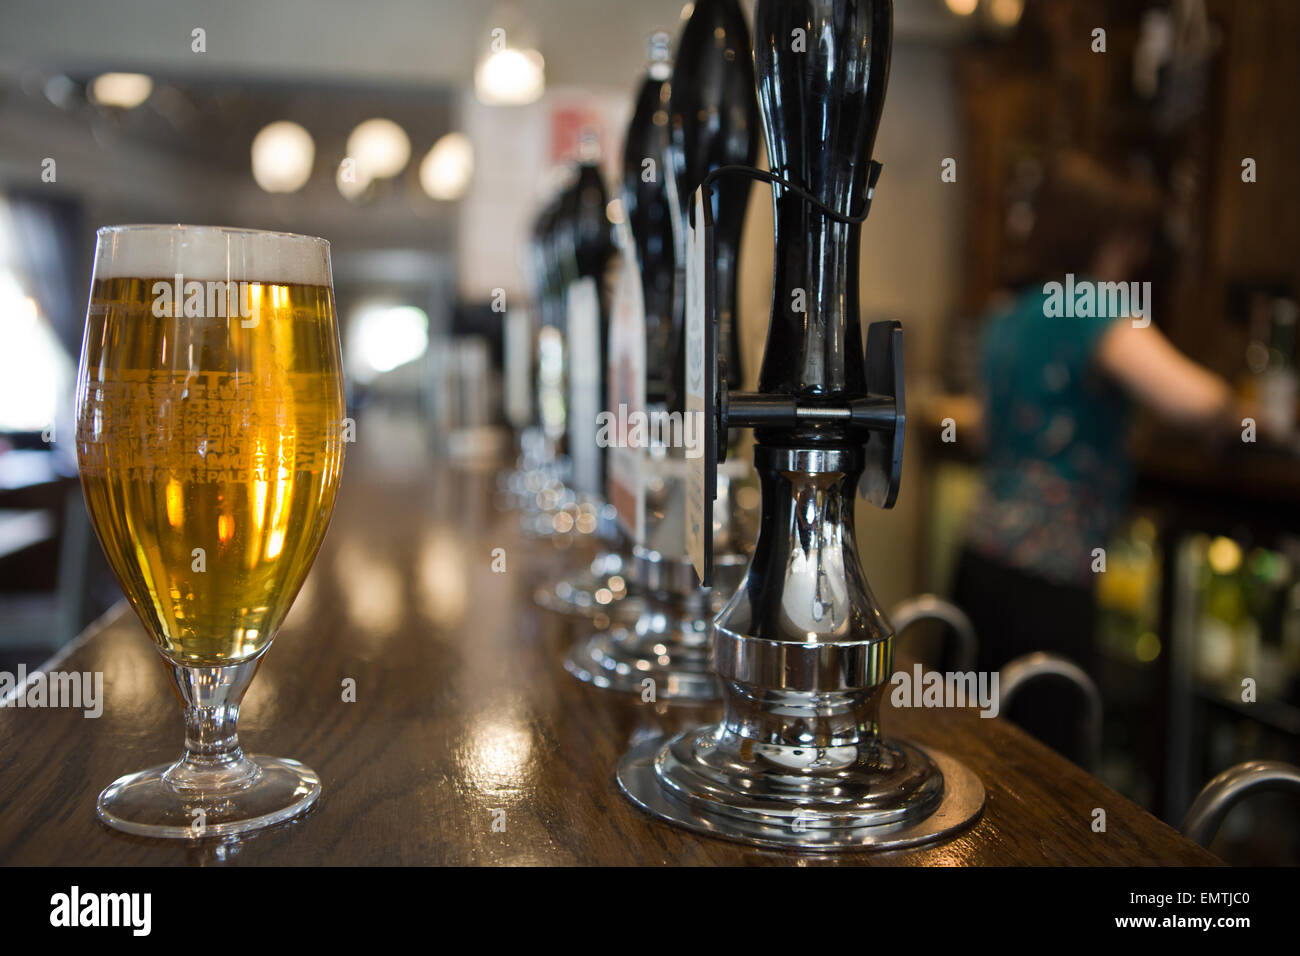 A pint of lager in a pub with a member of staff behind the bar - Stock Image